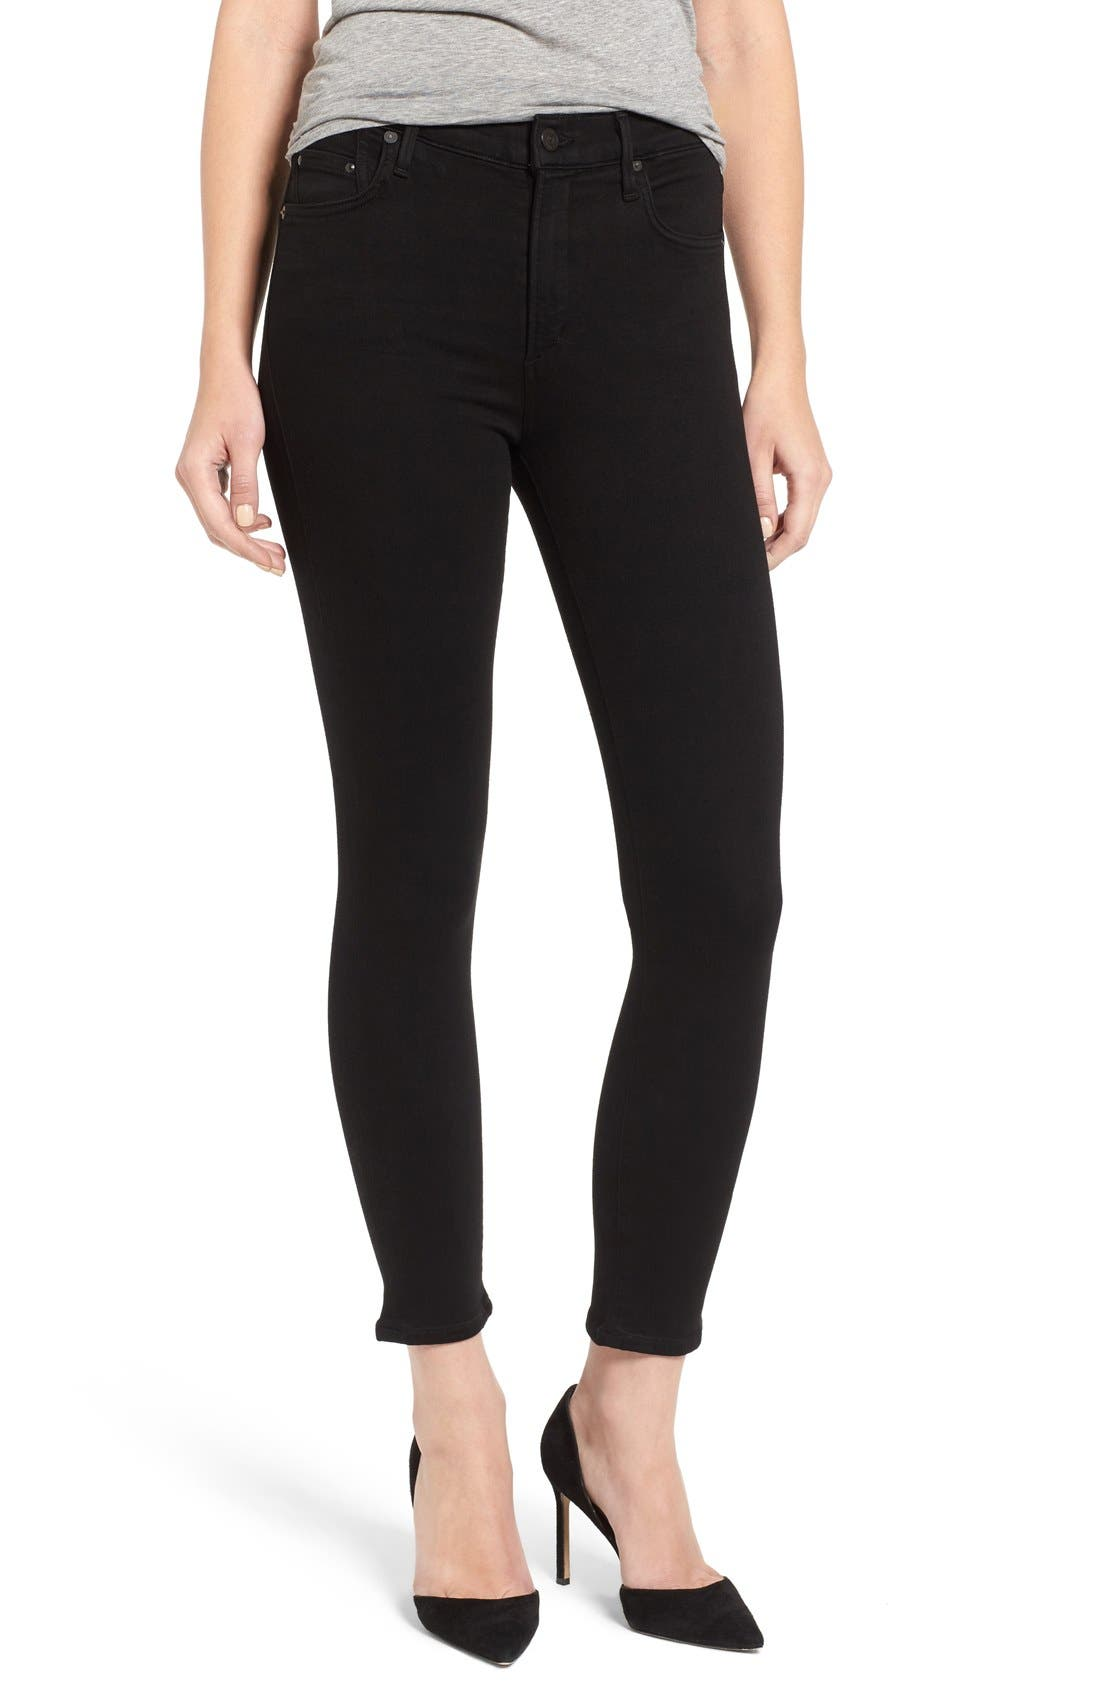 Rocket High Rise Crop Skinny Jeans,                             Main thumbnail 1, color,                             All Black